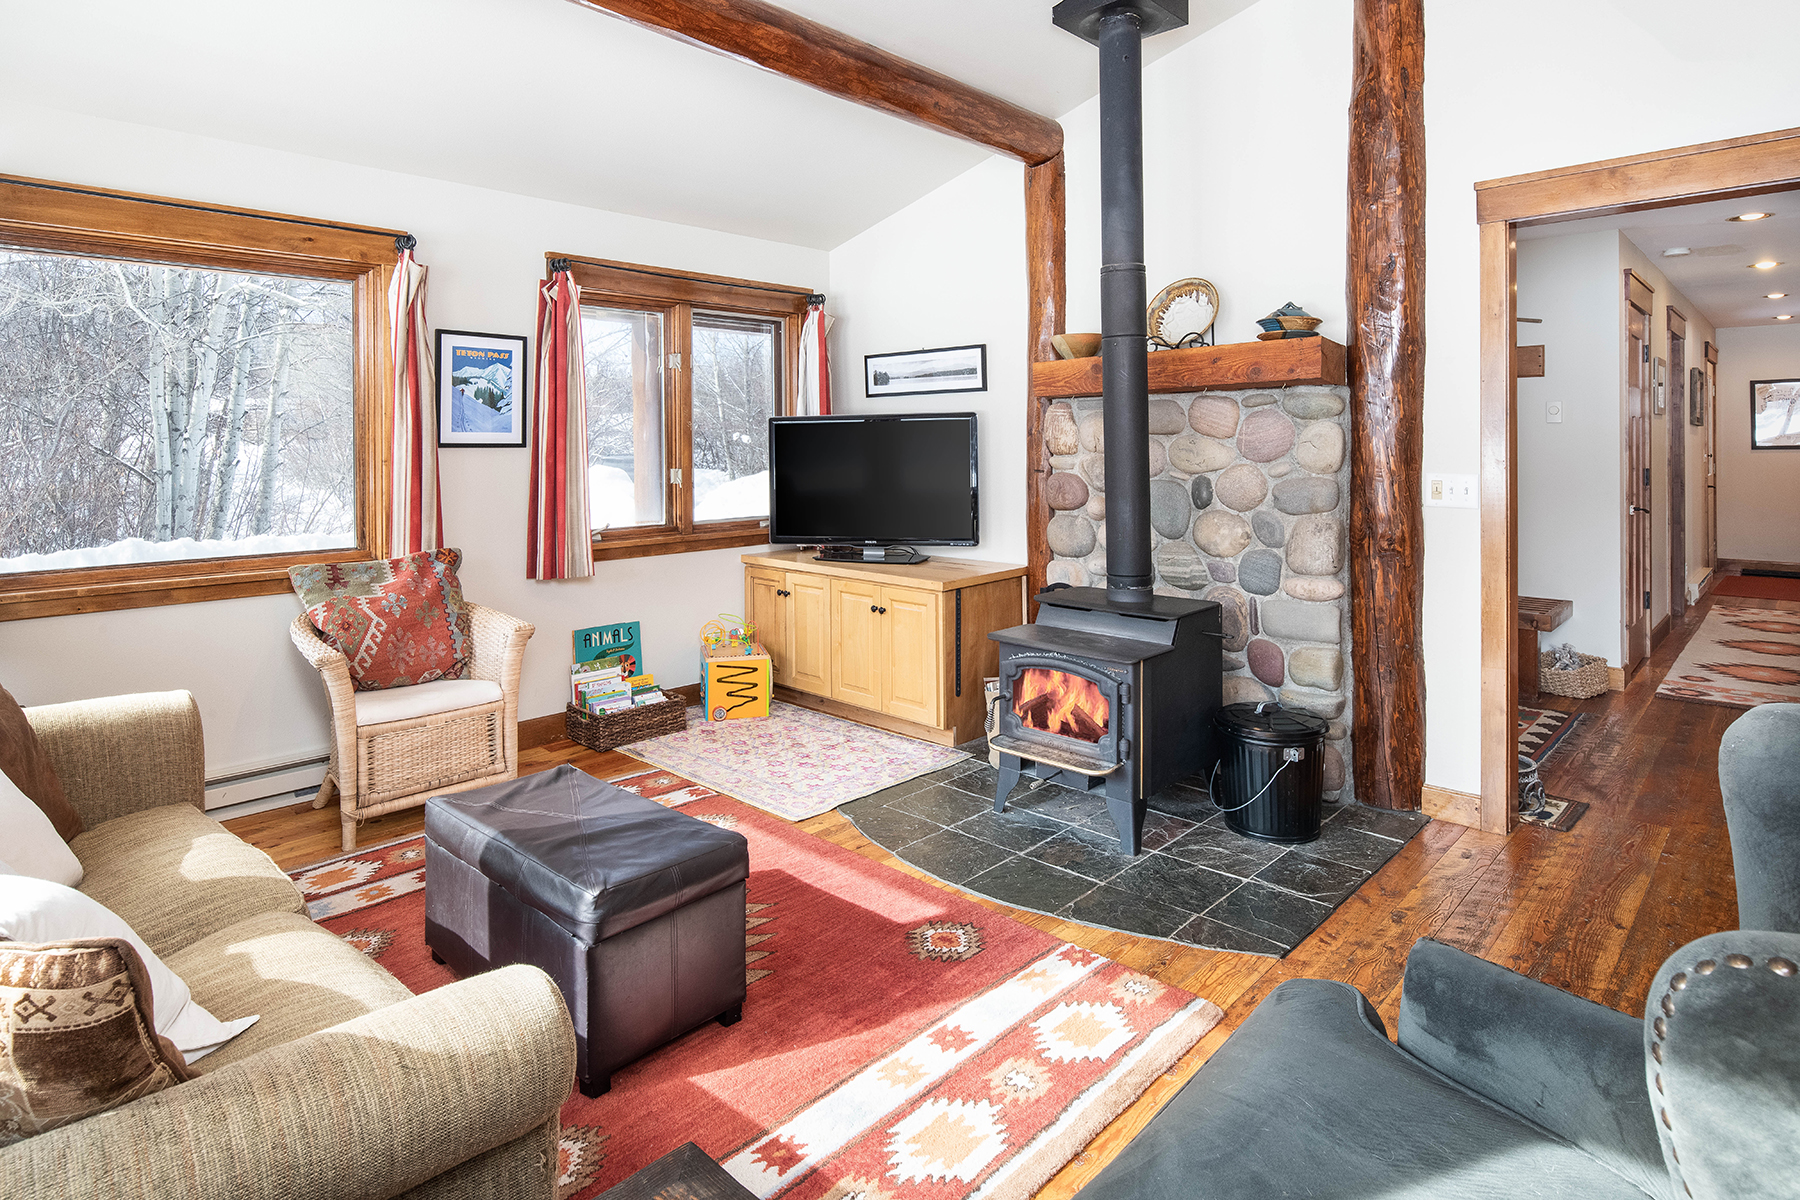 Single Family Home for Active at Beautiful Teton Pass Property 1320 T-C Drive Victor, Idaho 83455 United States